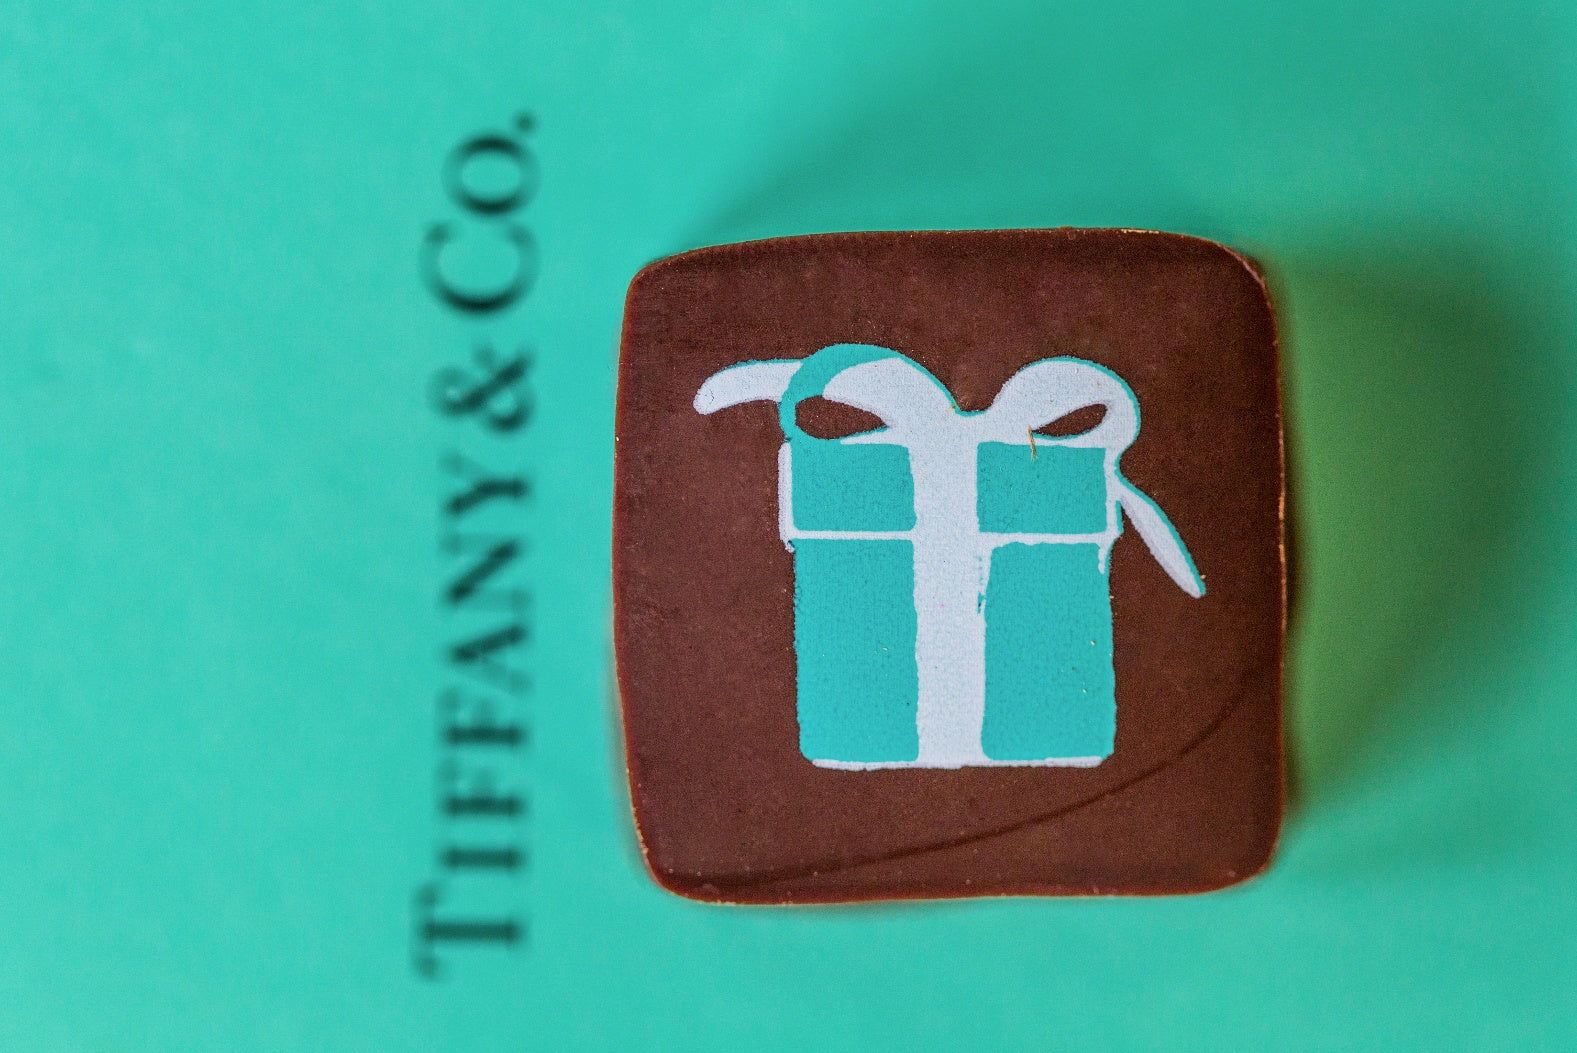 Signature ganache with Tiffany & Co. logo.